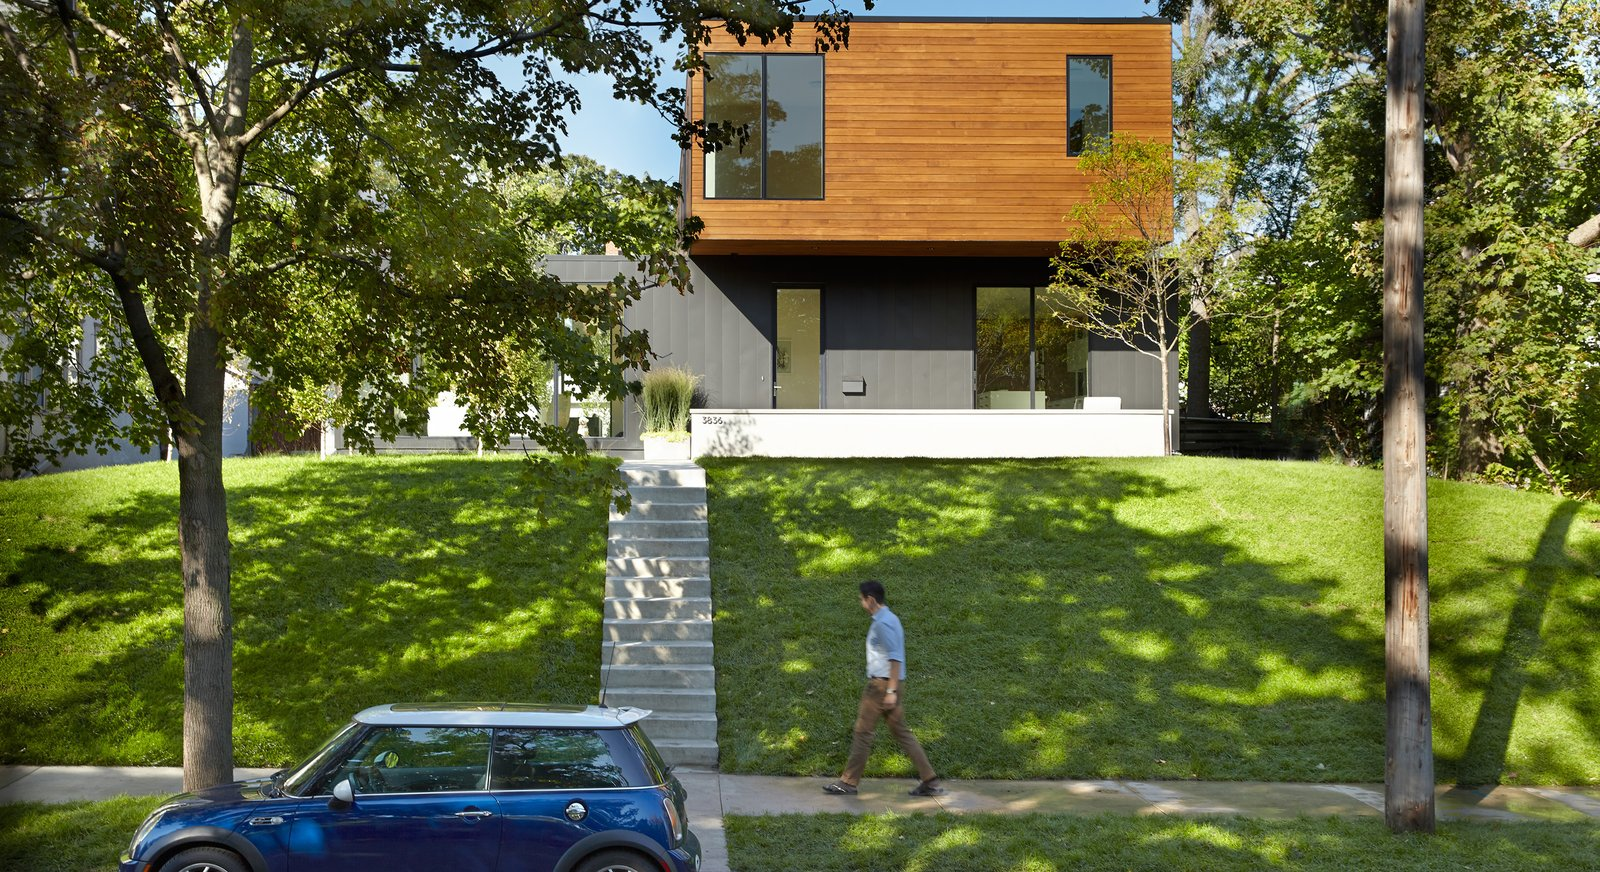 Tagged: Outdoor, Metal Patio, Porch, Deck, Grass, Front Yard, Trees, Concrete Patio, Porch, Deck, and Wood Patio, Porch, Deck.  Sheridan Residence by Peterssen/Keller Architecture